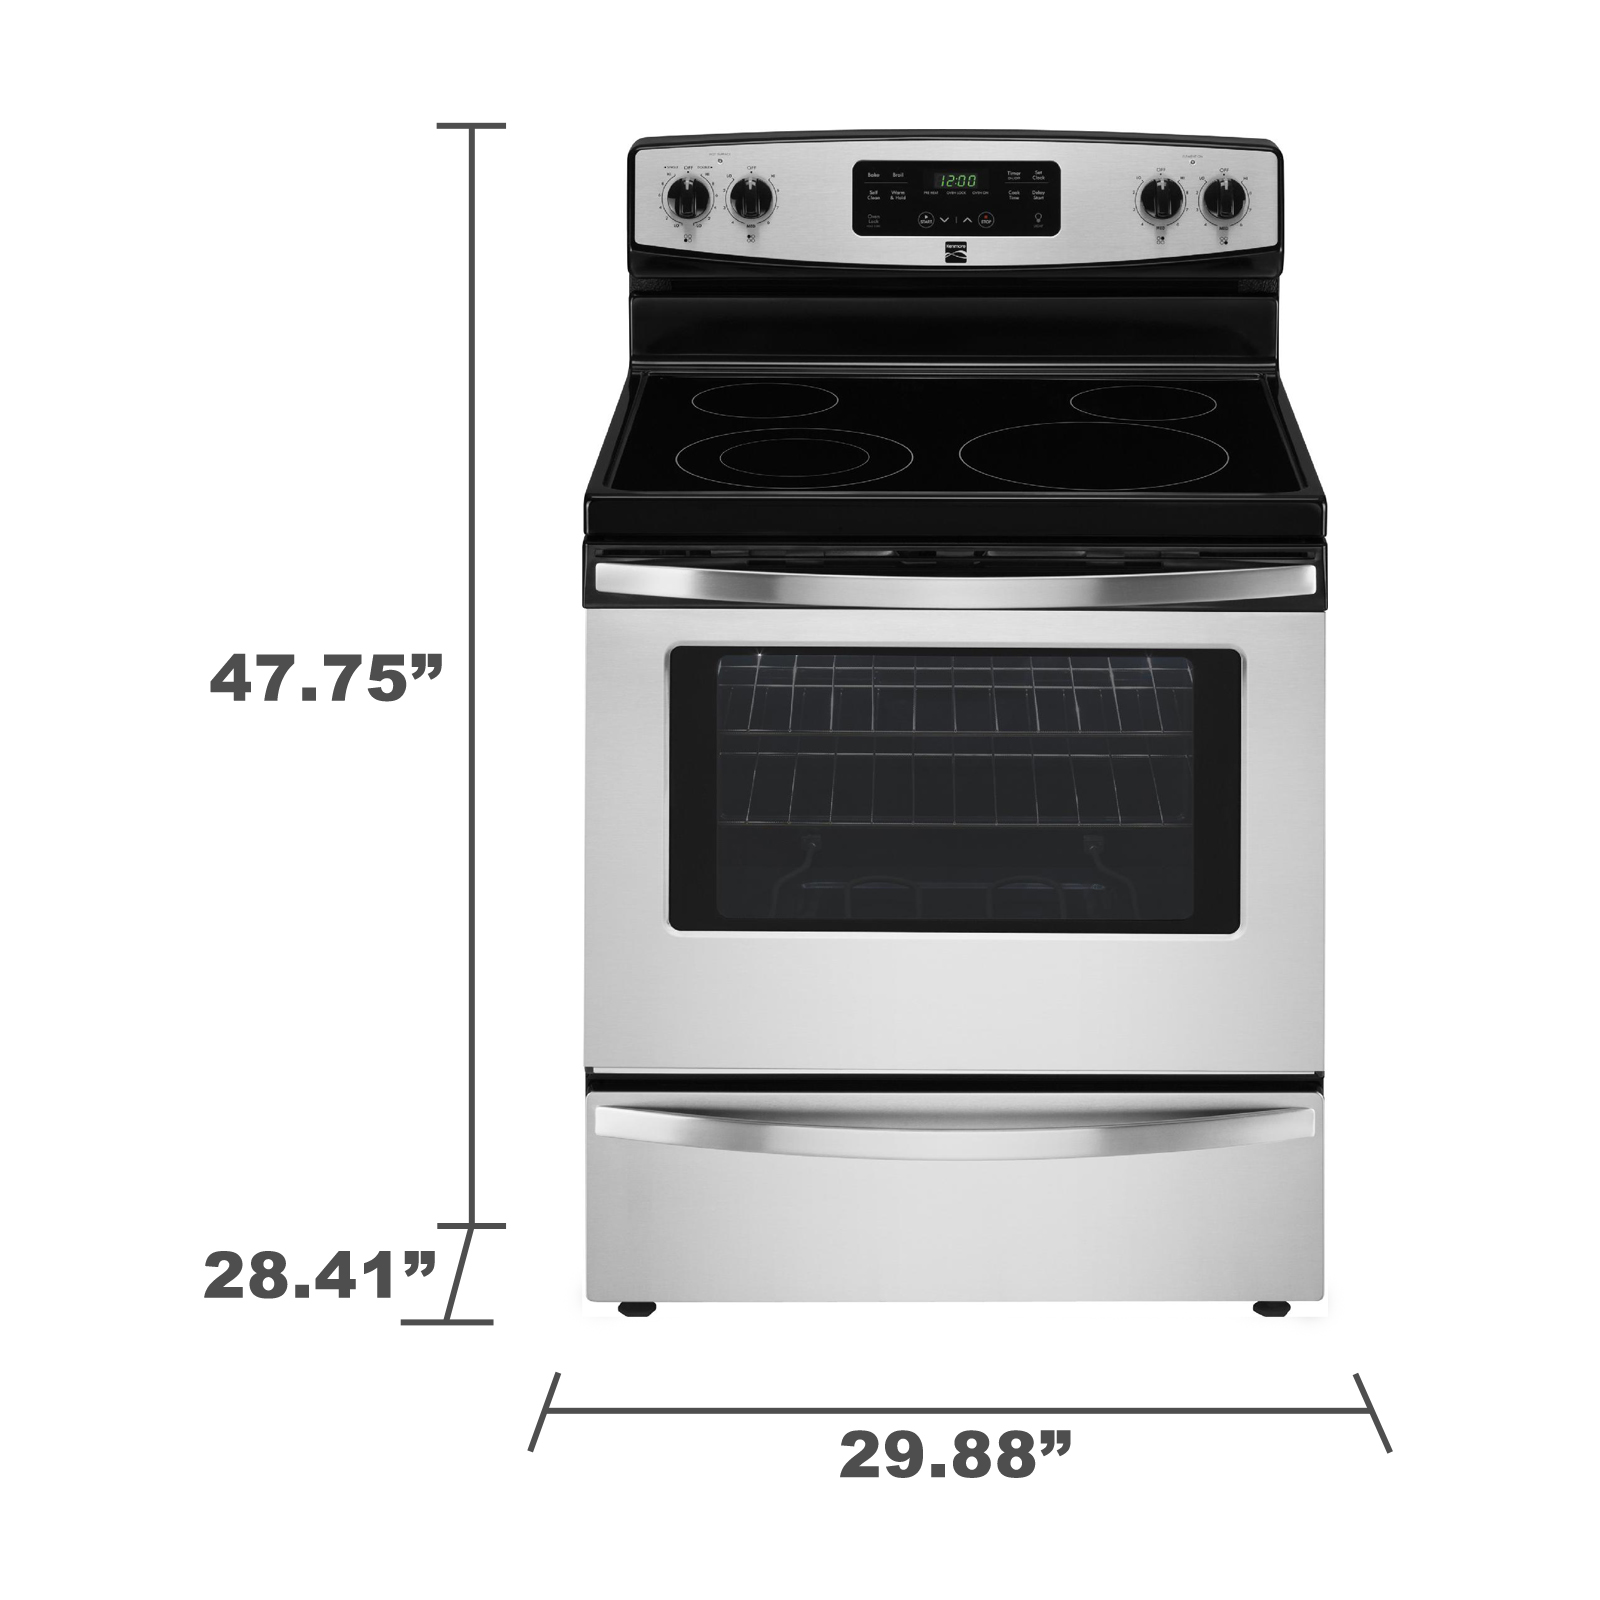 Kenmore 94173 5.3 cu. ft. Self-Cleaning Electric Range - Stainless Steel